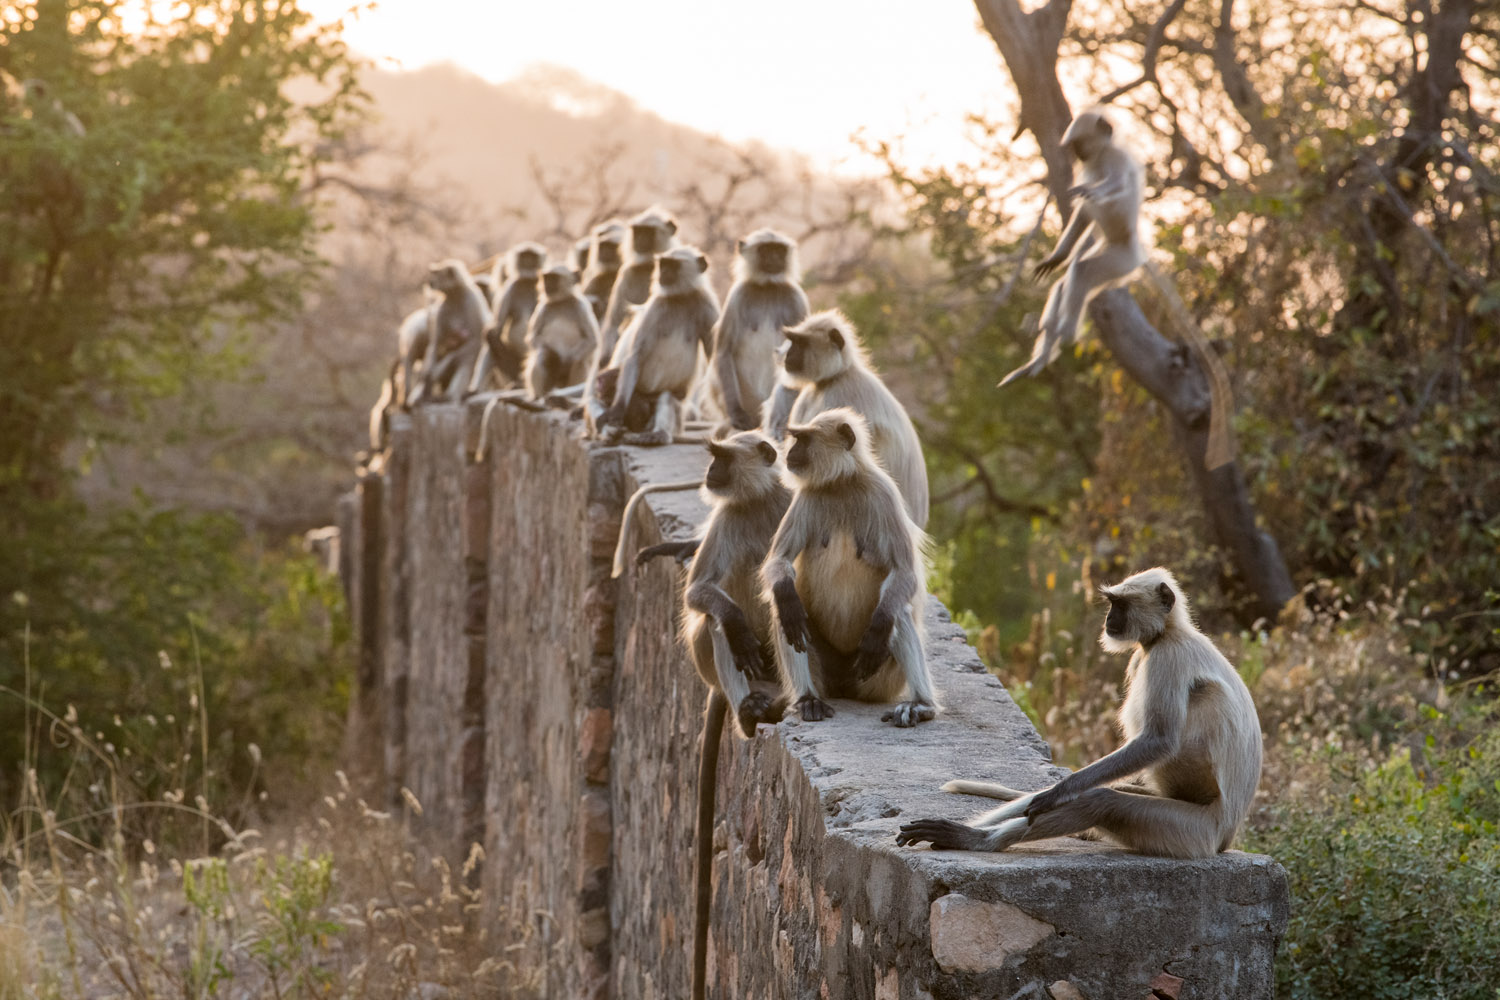 Hanuman langur monkeys sitting on wall, Ranthambhore National Park, Rajasthan, India